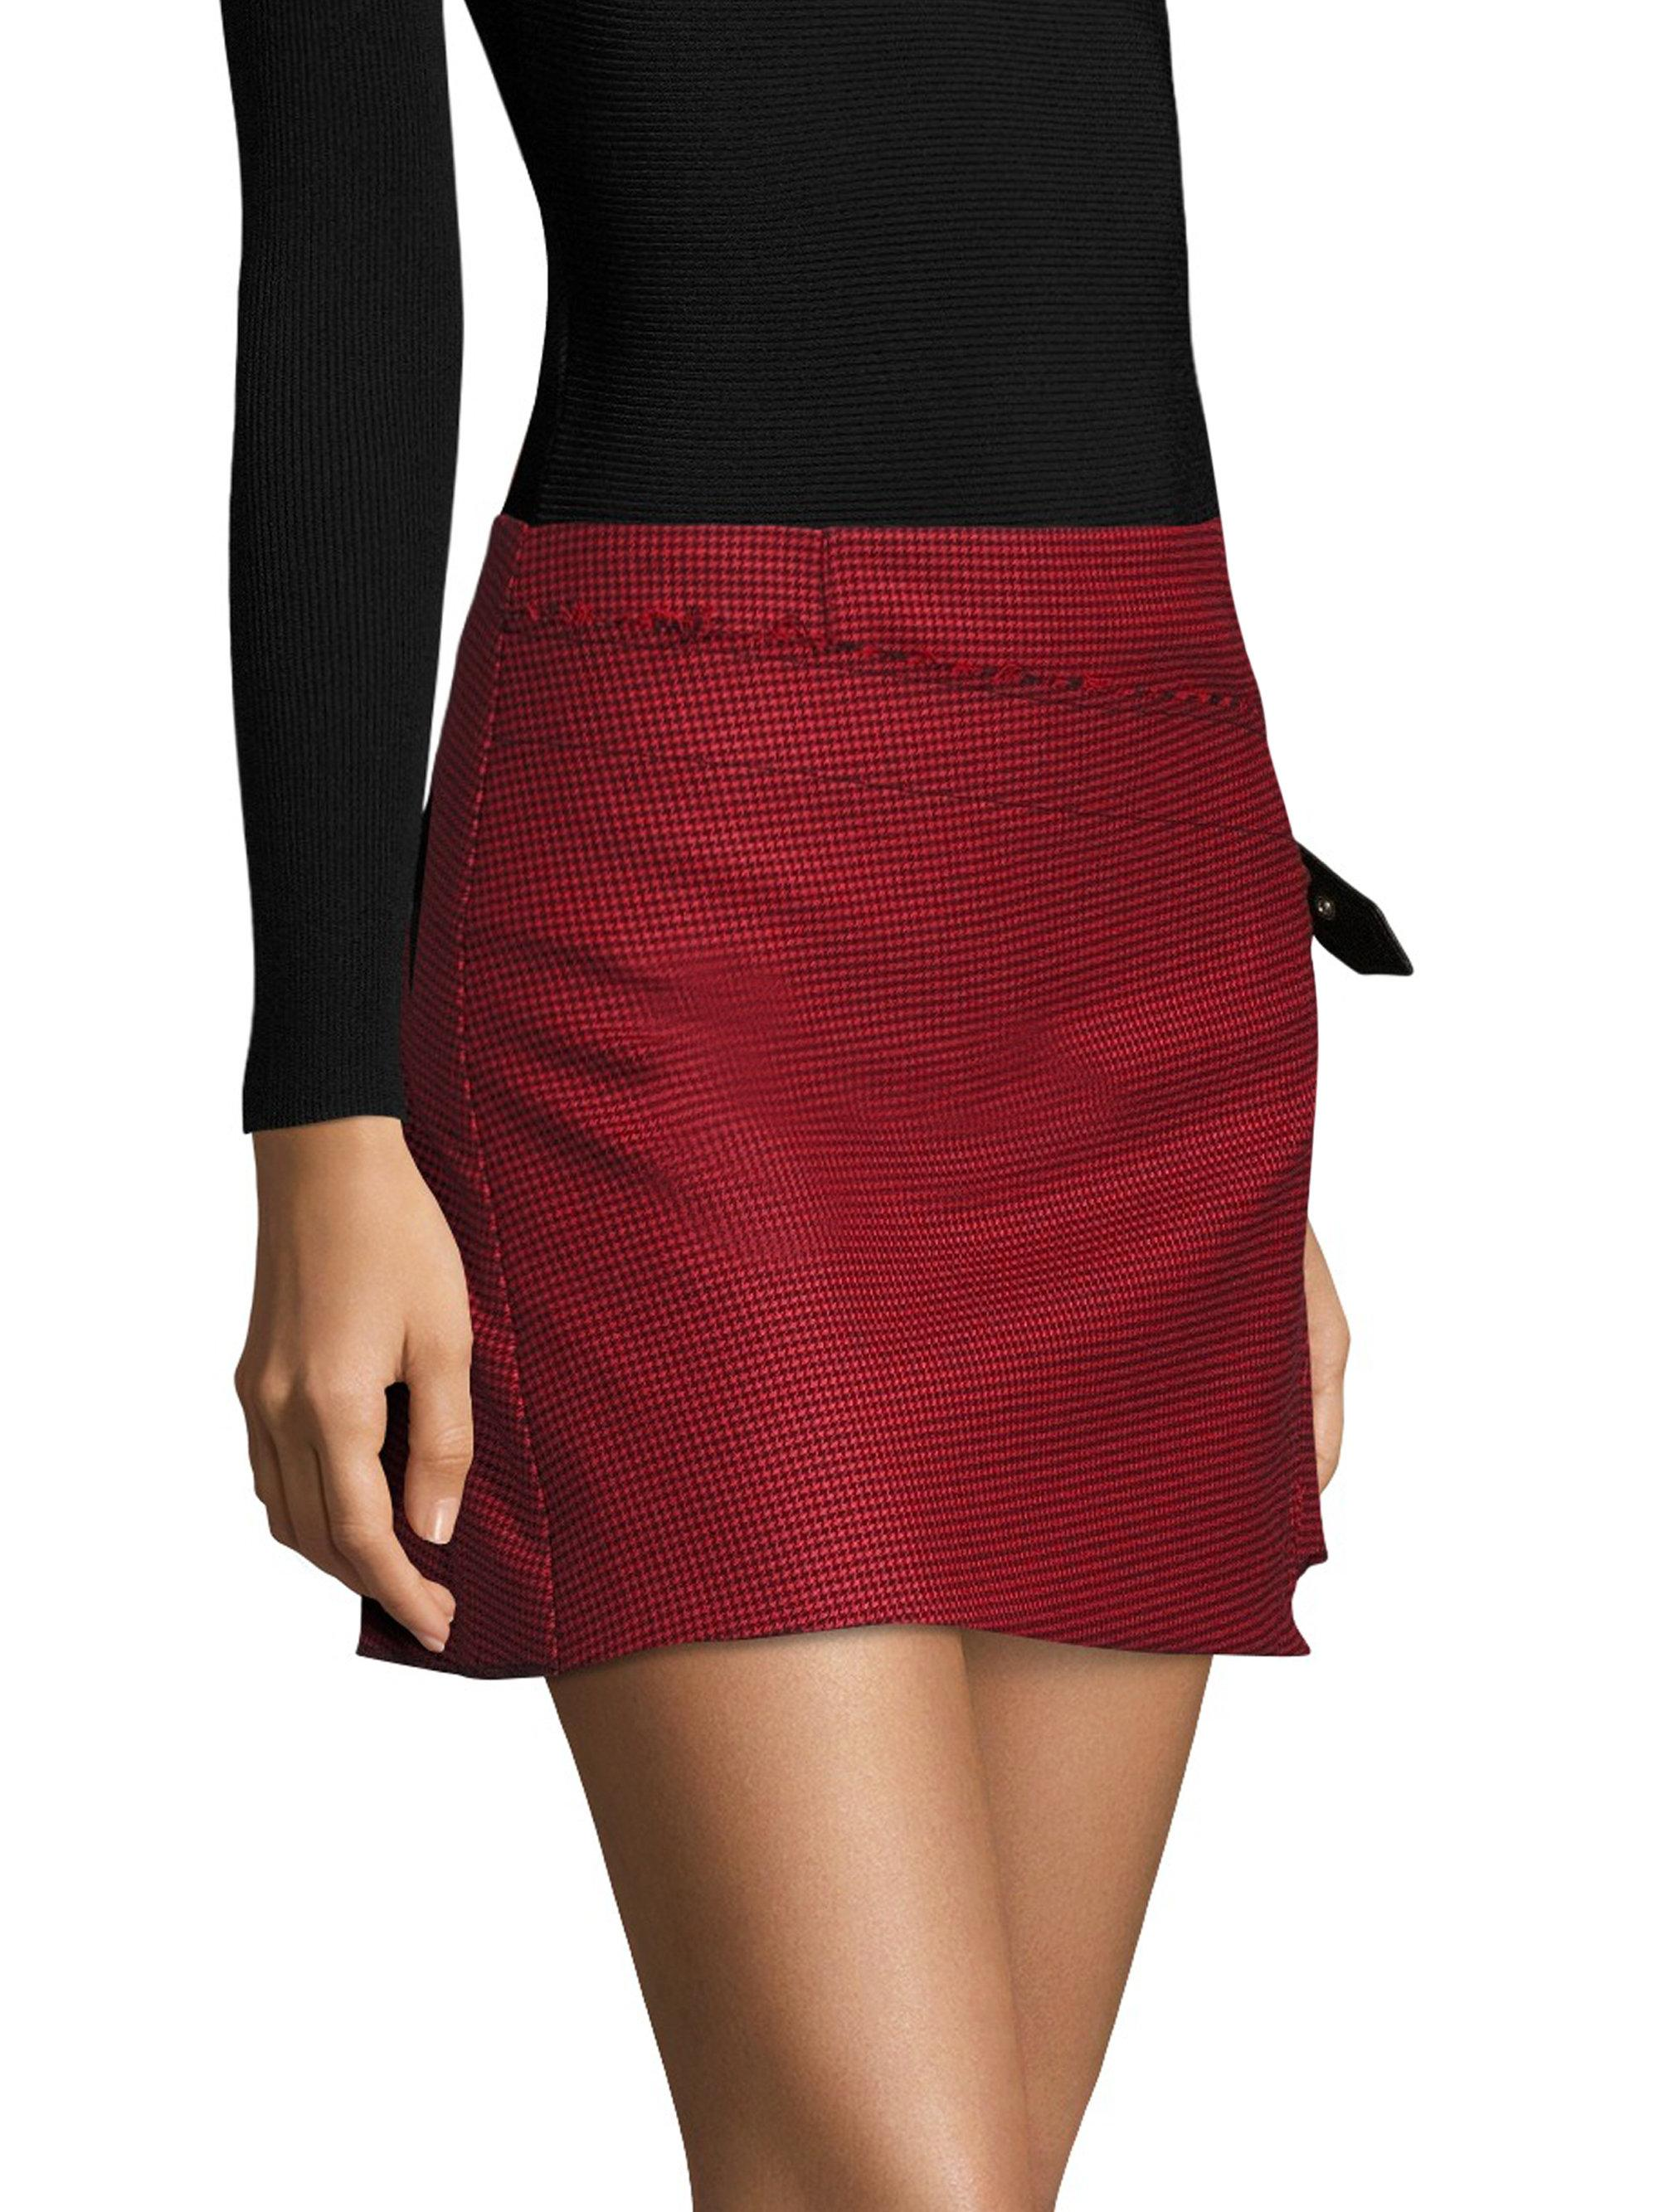 ae7a498811 Gallery. Previously sold at: Saks Fifth Avenue · Women's Houndstooth Skirts